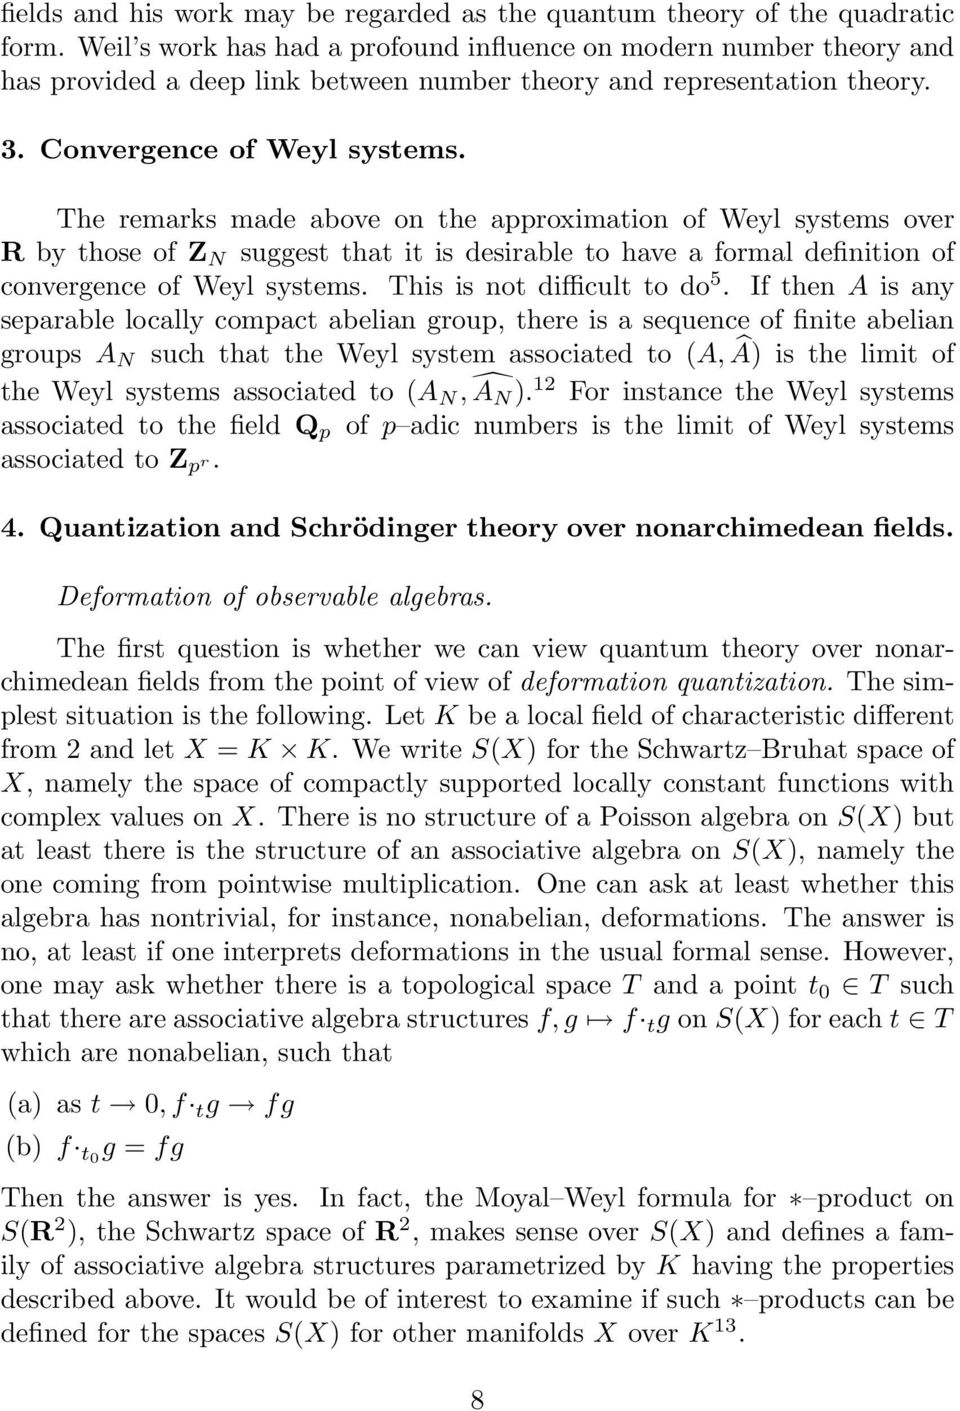 The remarks made above on the approximation of Weyl systems over R by those of Z N suggest that it is desirable to have a formal definition of convergence of Weyl systems.